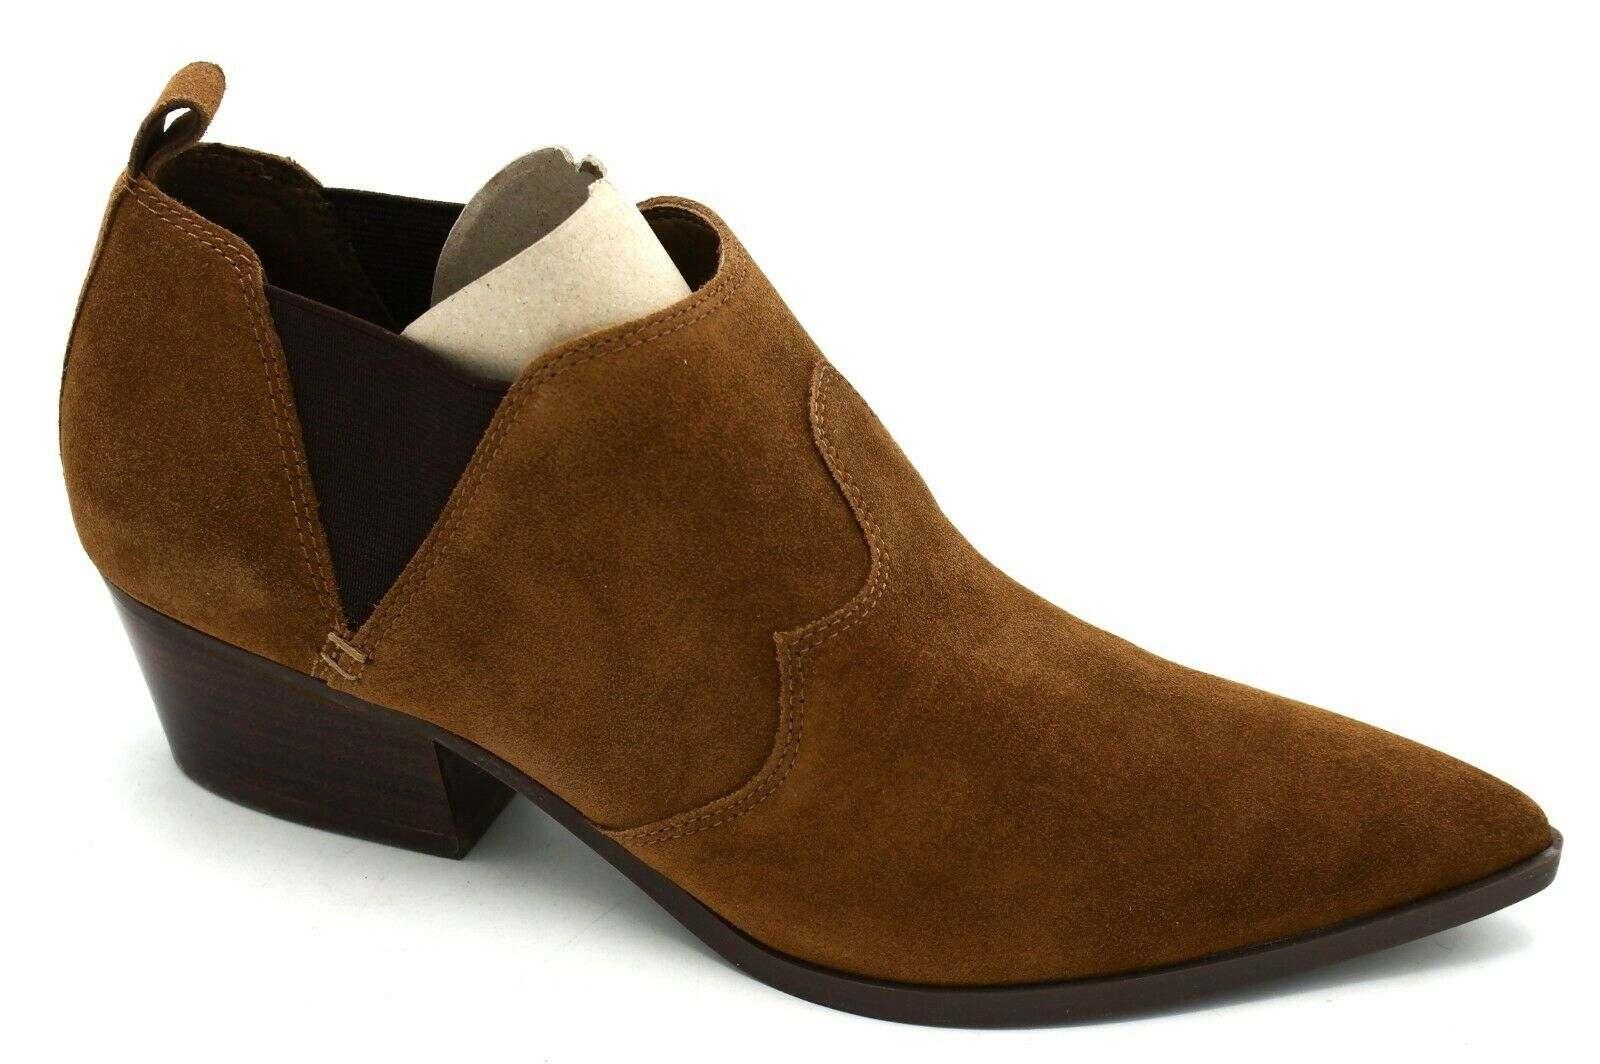 J8237 New w Box Women's Nine West Cahluz Brown Suede Ankle Boot 7.5 M